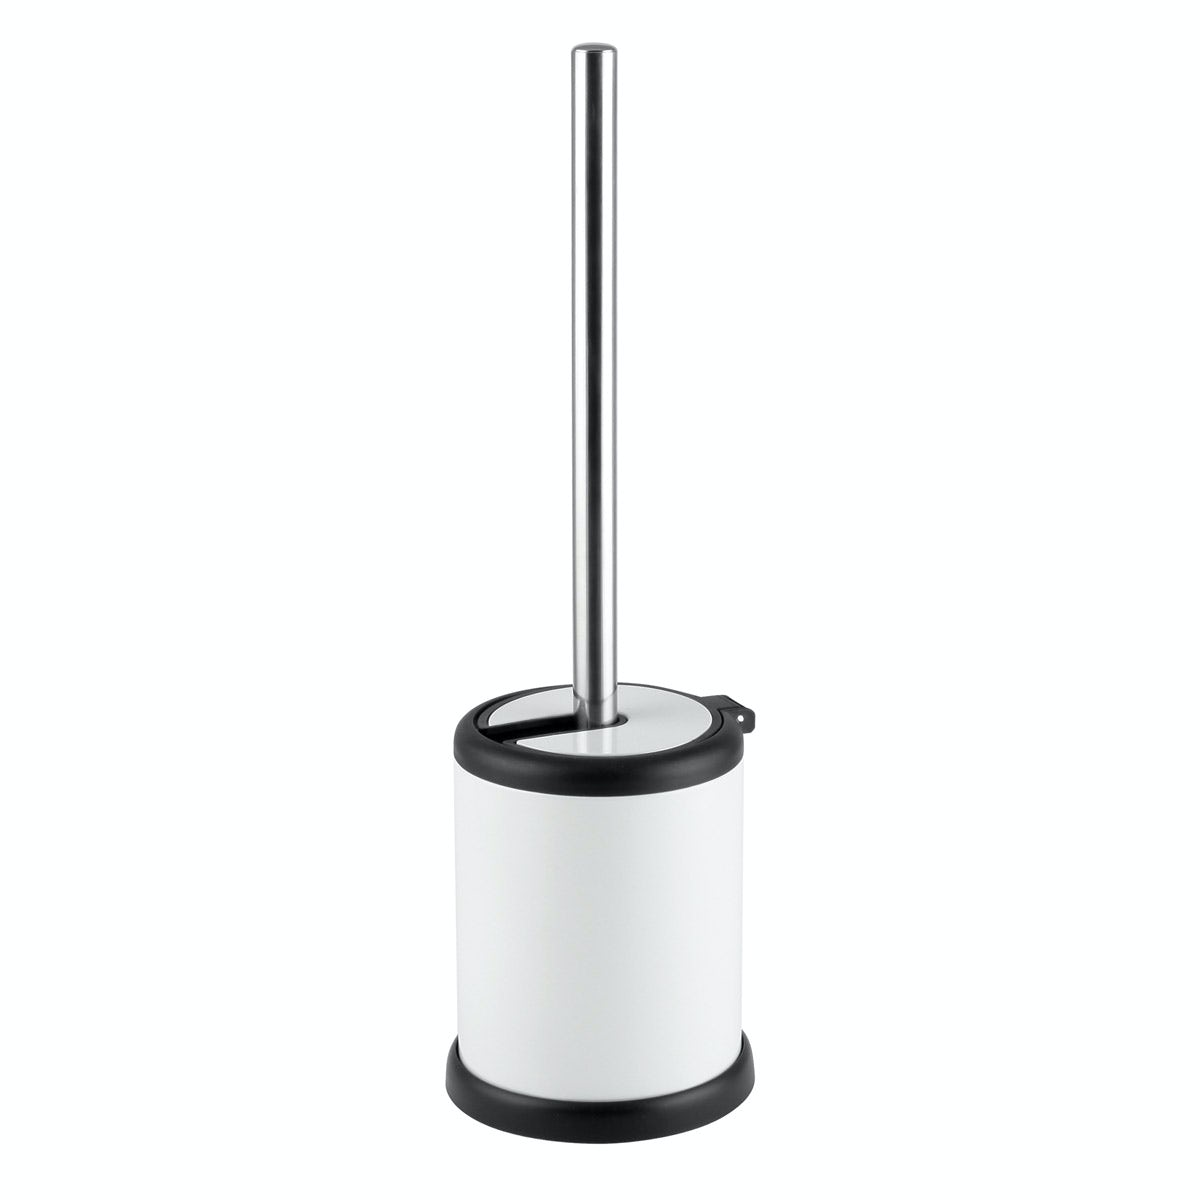 Showerdrape Aero white toilet brush